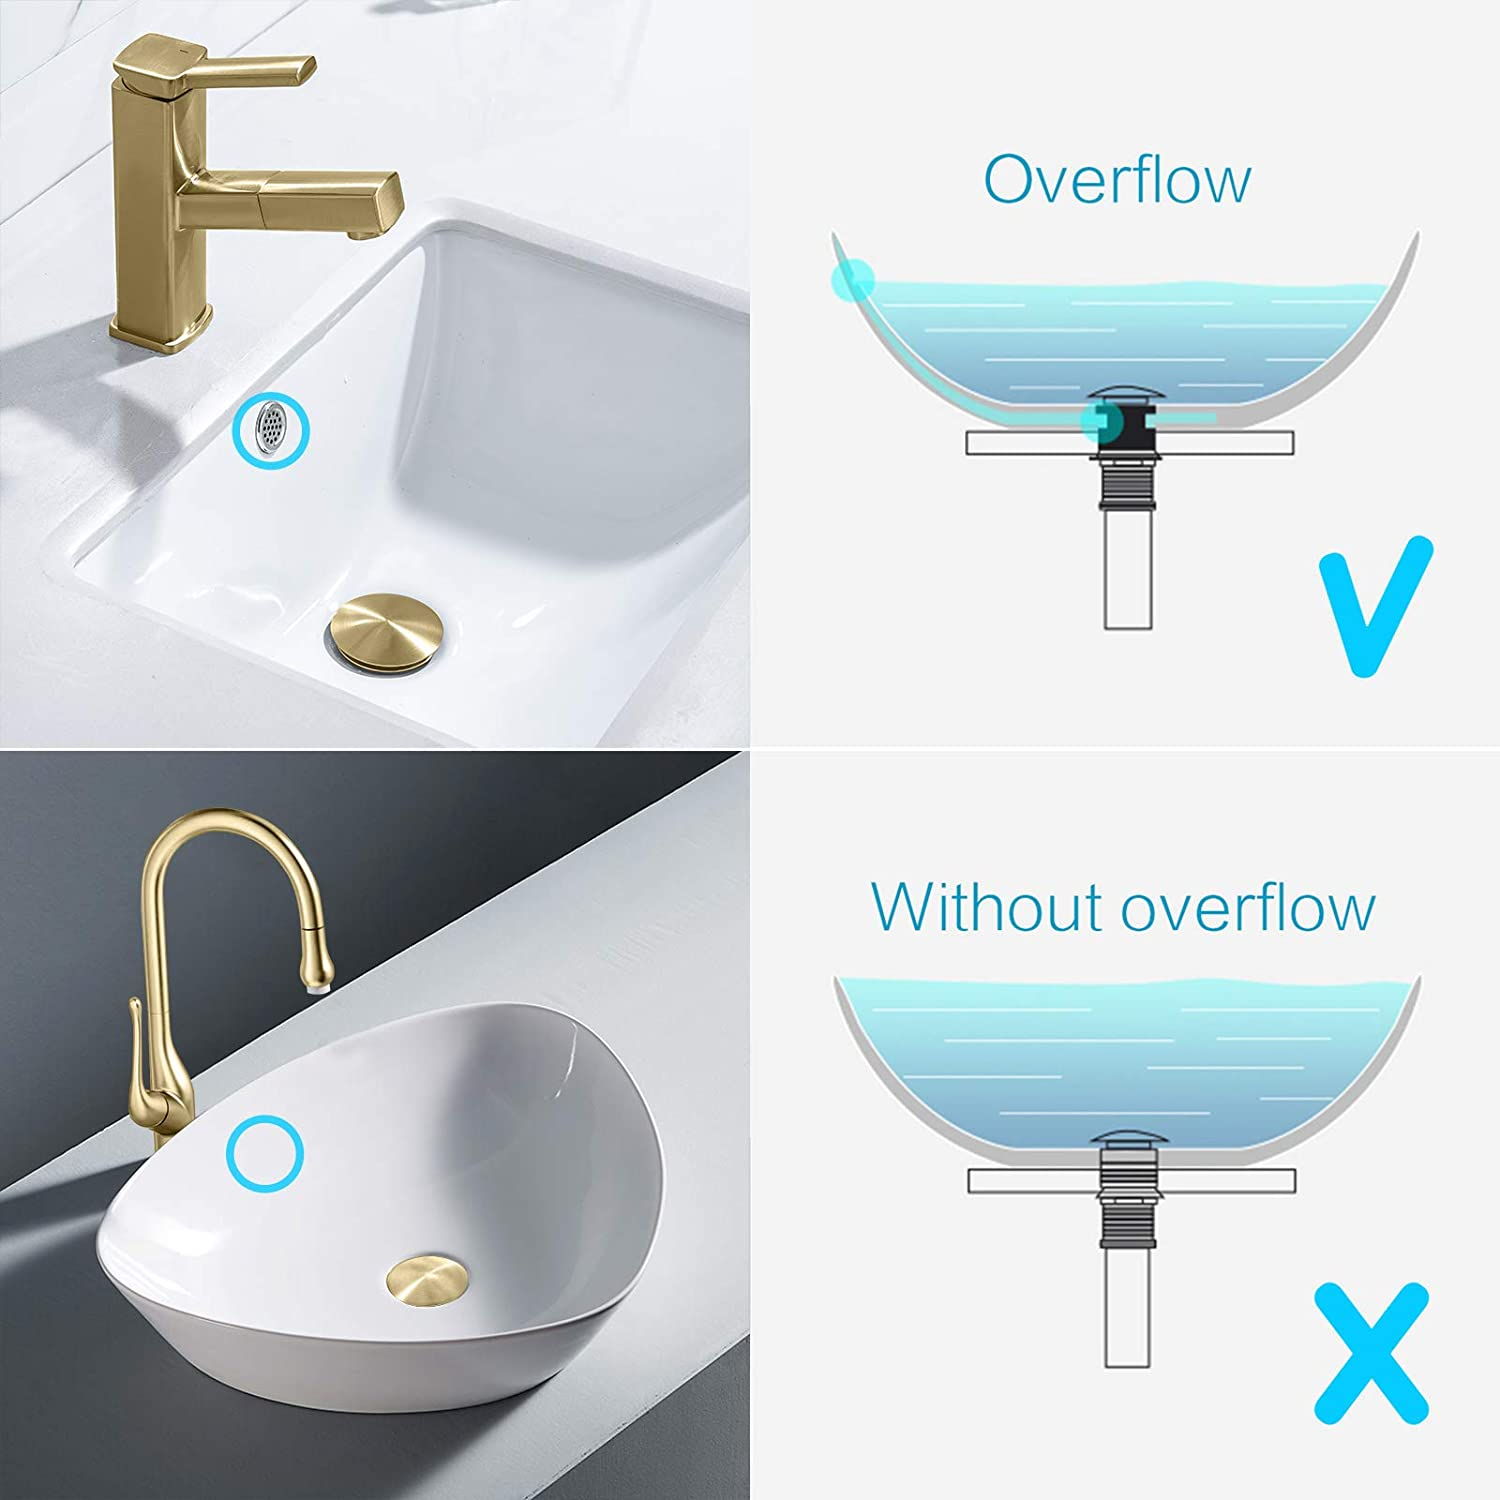 Buy Kaiying Pop Up Drain Bathroom Sink Drain Stopper With Overflow Vessel Sink Drain Assembly With Detachable Basket Stopper Anti Explosion And Anti Clogging Drain Strainer Brushed Gold Online In Turkey B08k92qdqd